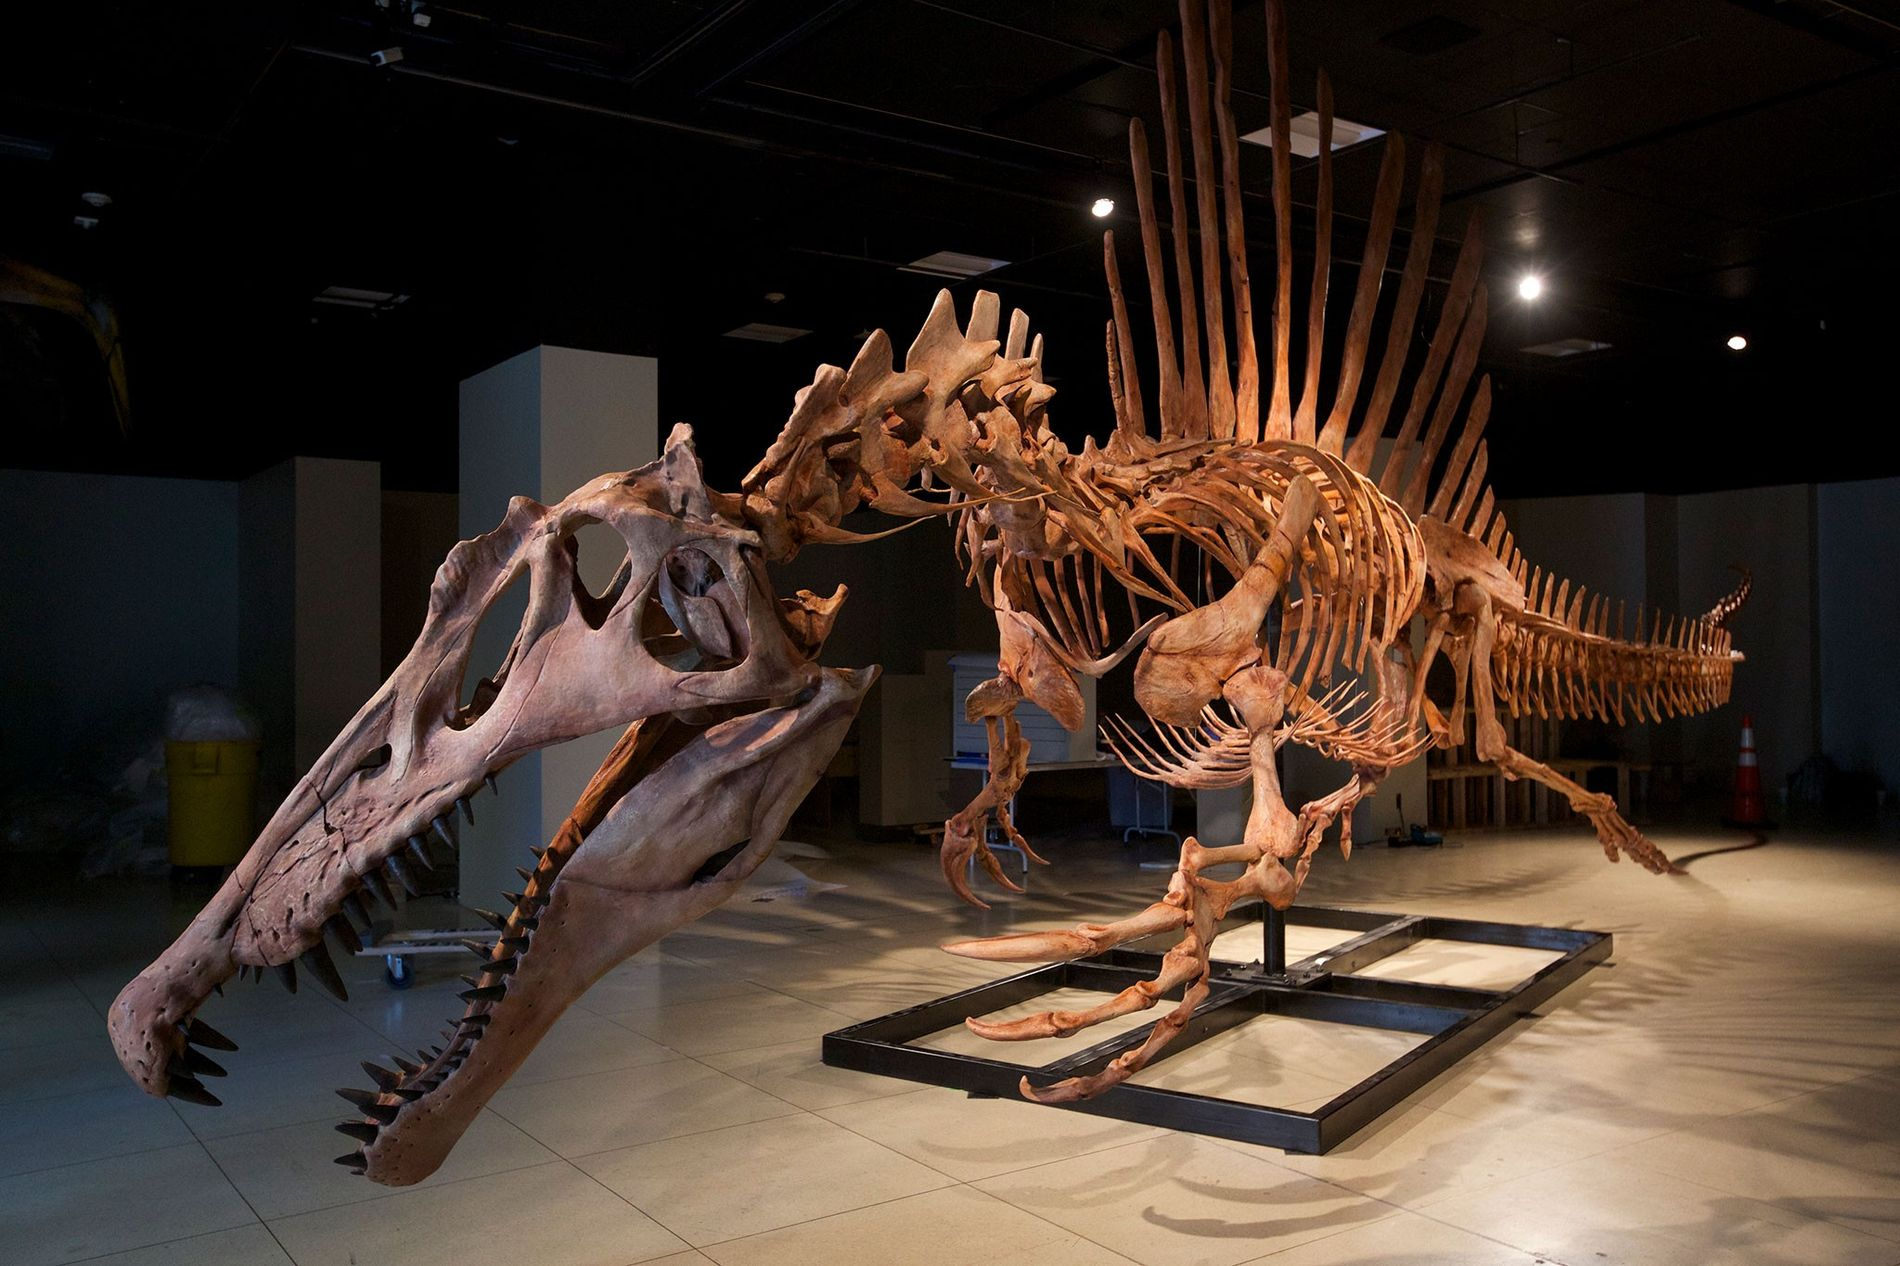 A life size model of the skeleton of Spinosaurus aegyptiacus, the largest meat-eating dinosaur ever found.